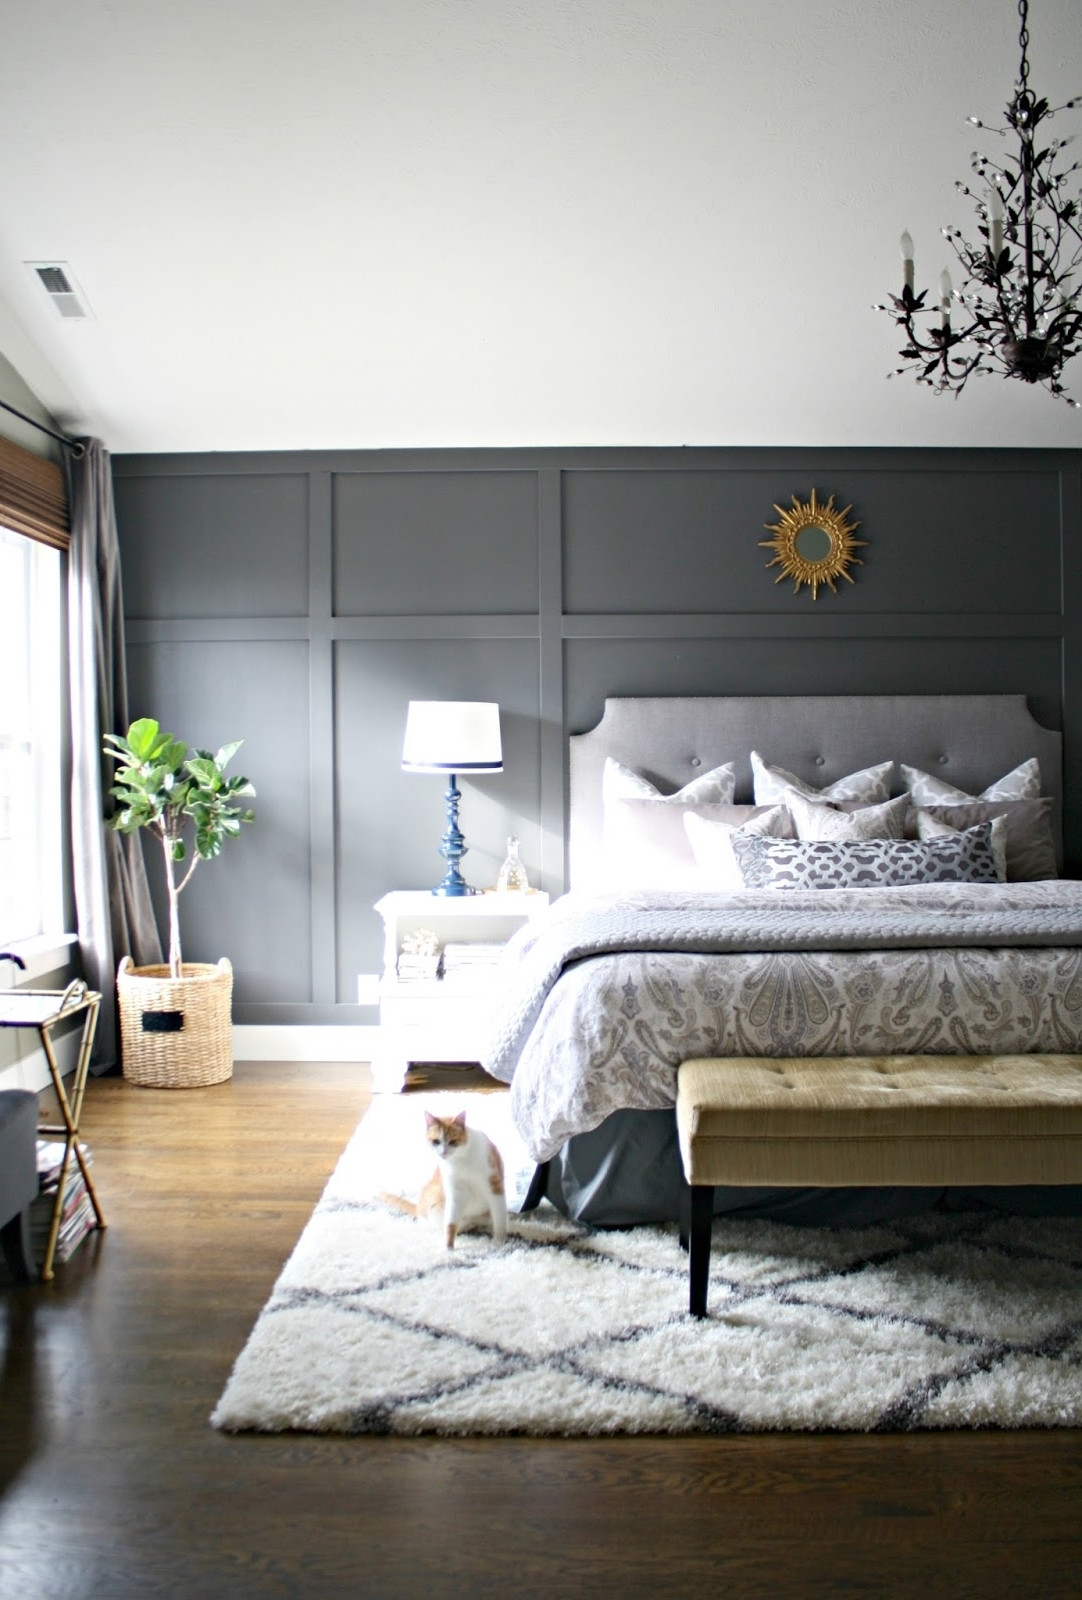 Best ideas about Accent Walls Ideas Bedroom . Save or Pin 15 Ideas of Wallpaper Bedroom Wall Accents Now.